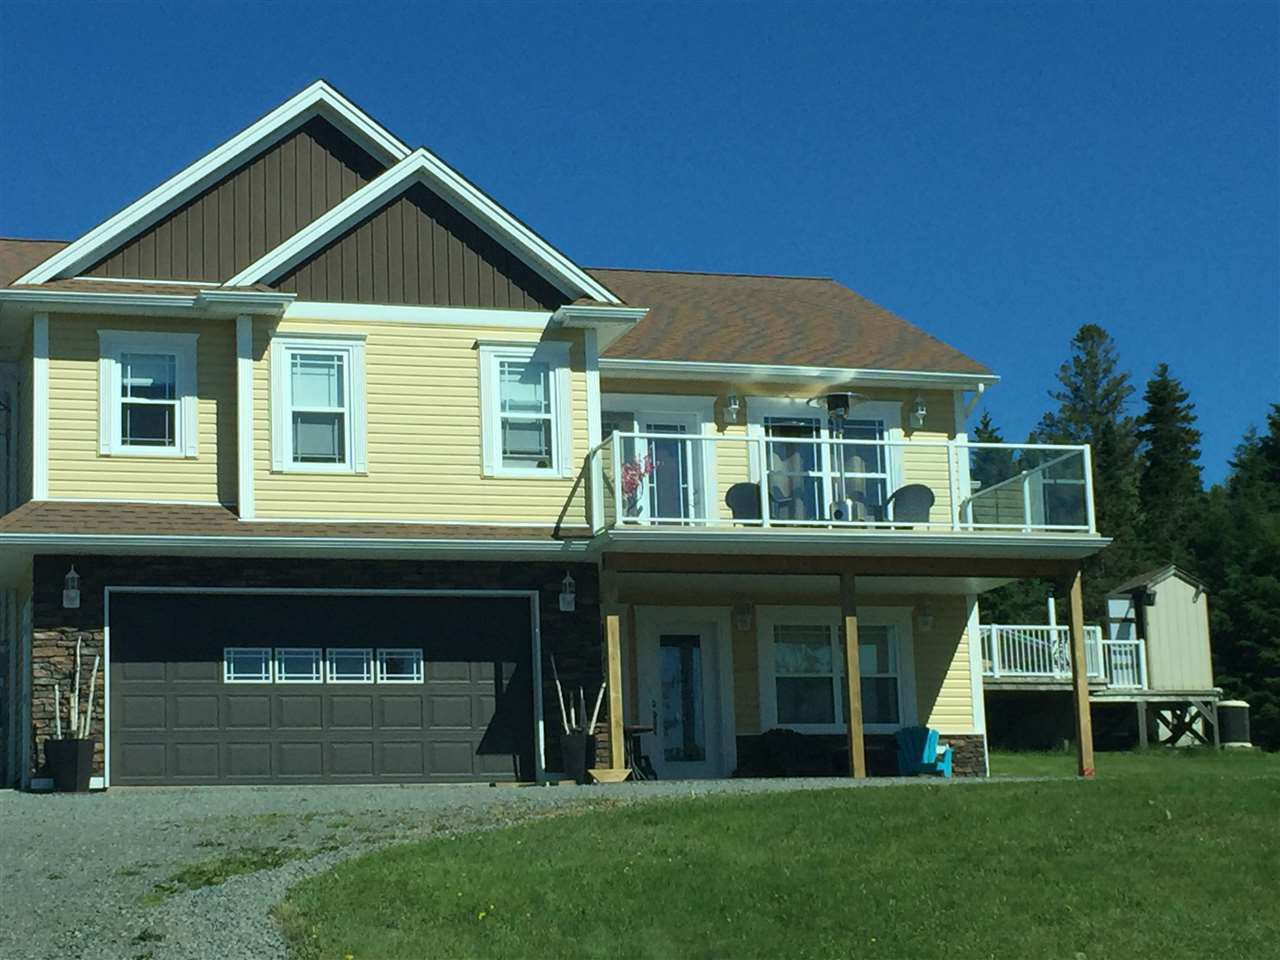 Main Photo: 558 East Uniacke Road in East Uniacke: 105-East Hants/Colchester West Residential for sale (Halifax-Dartmouth)  : MLS®# 202002956